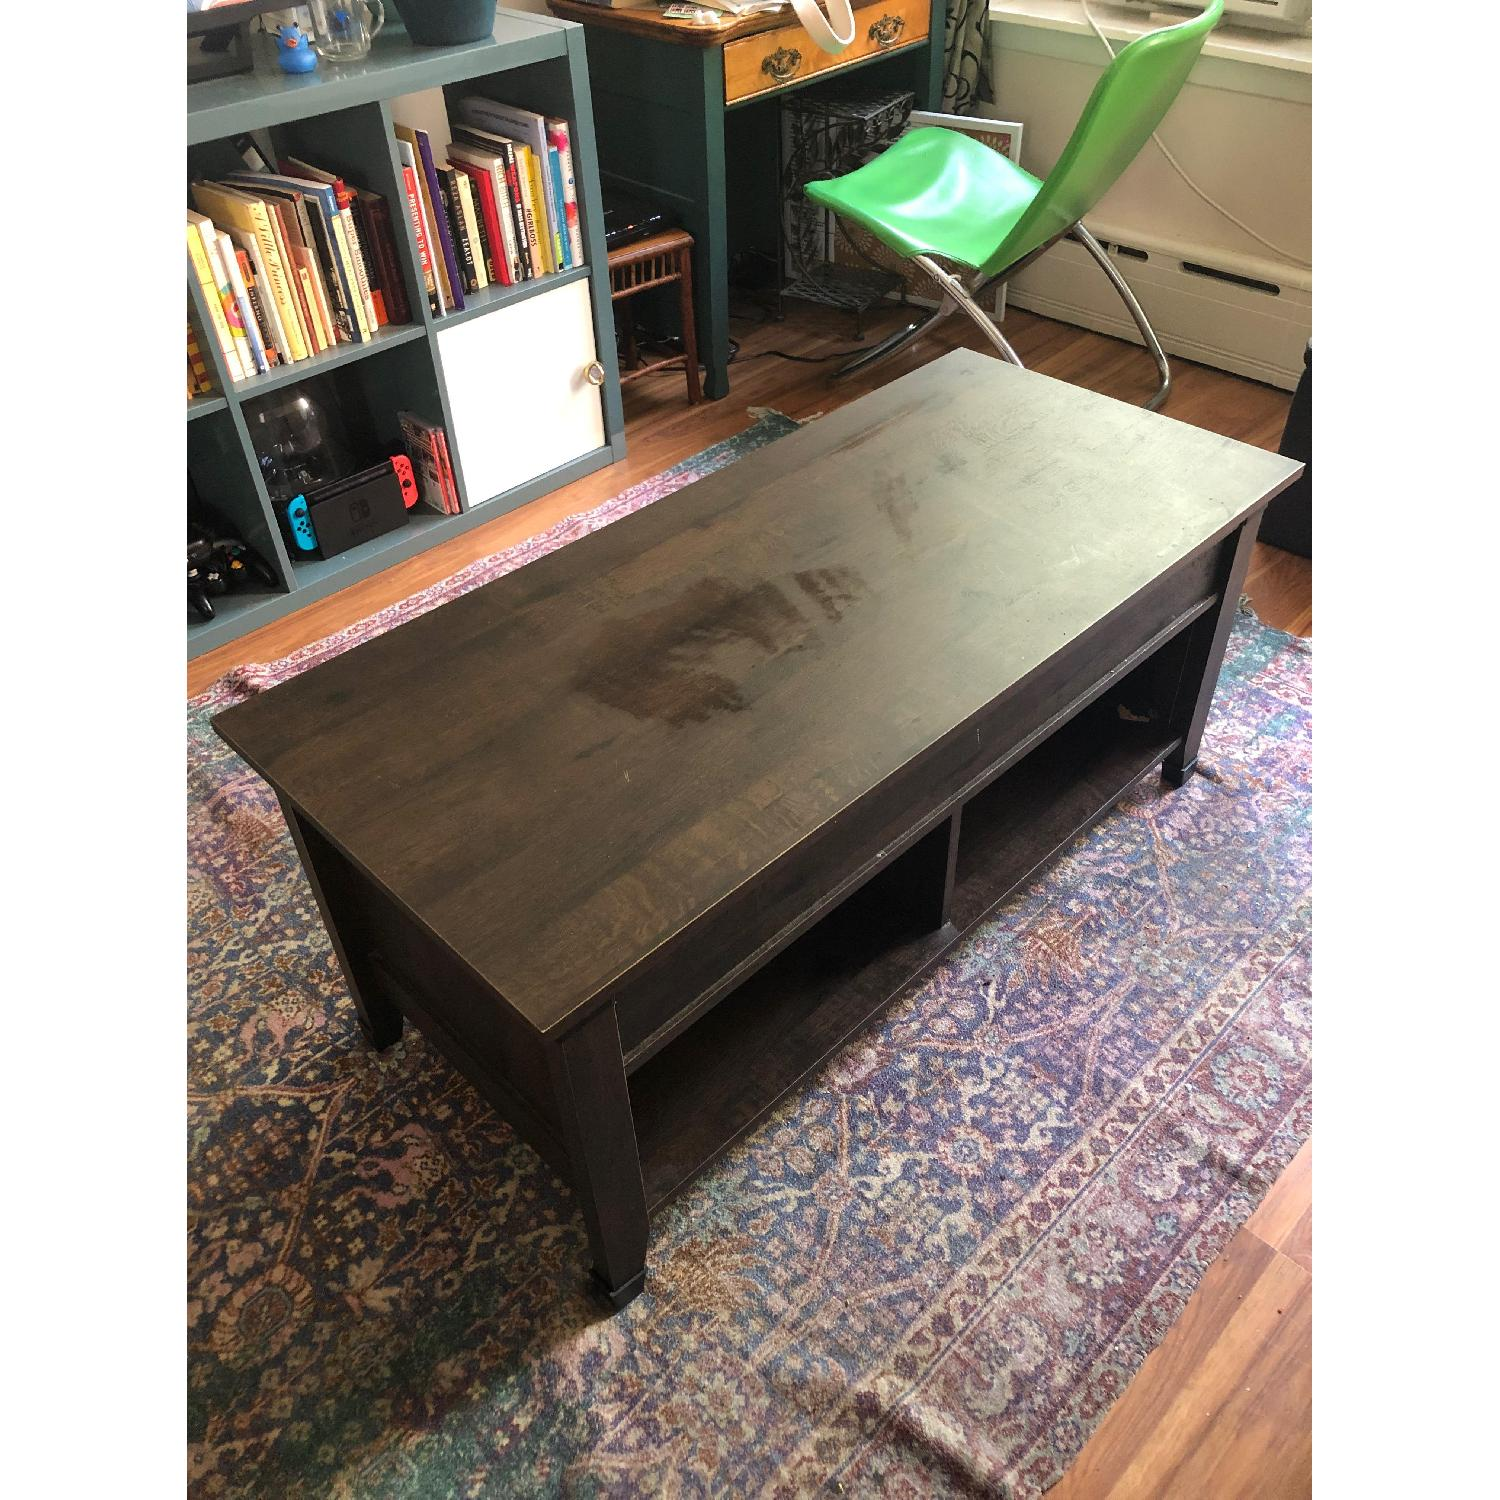 Sauder Carson Forge Lift Top Coffee Table - image-6